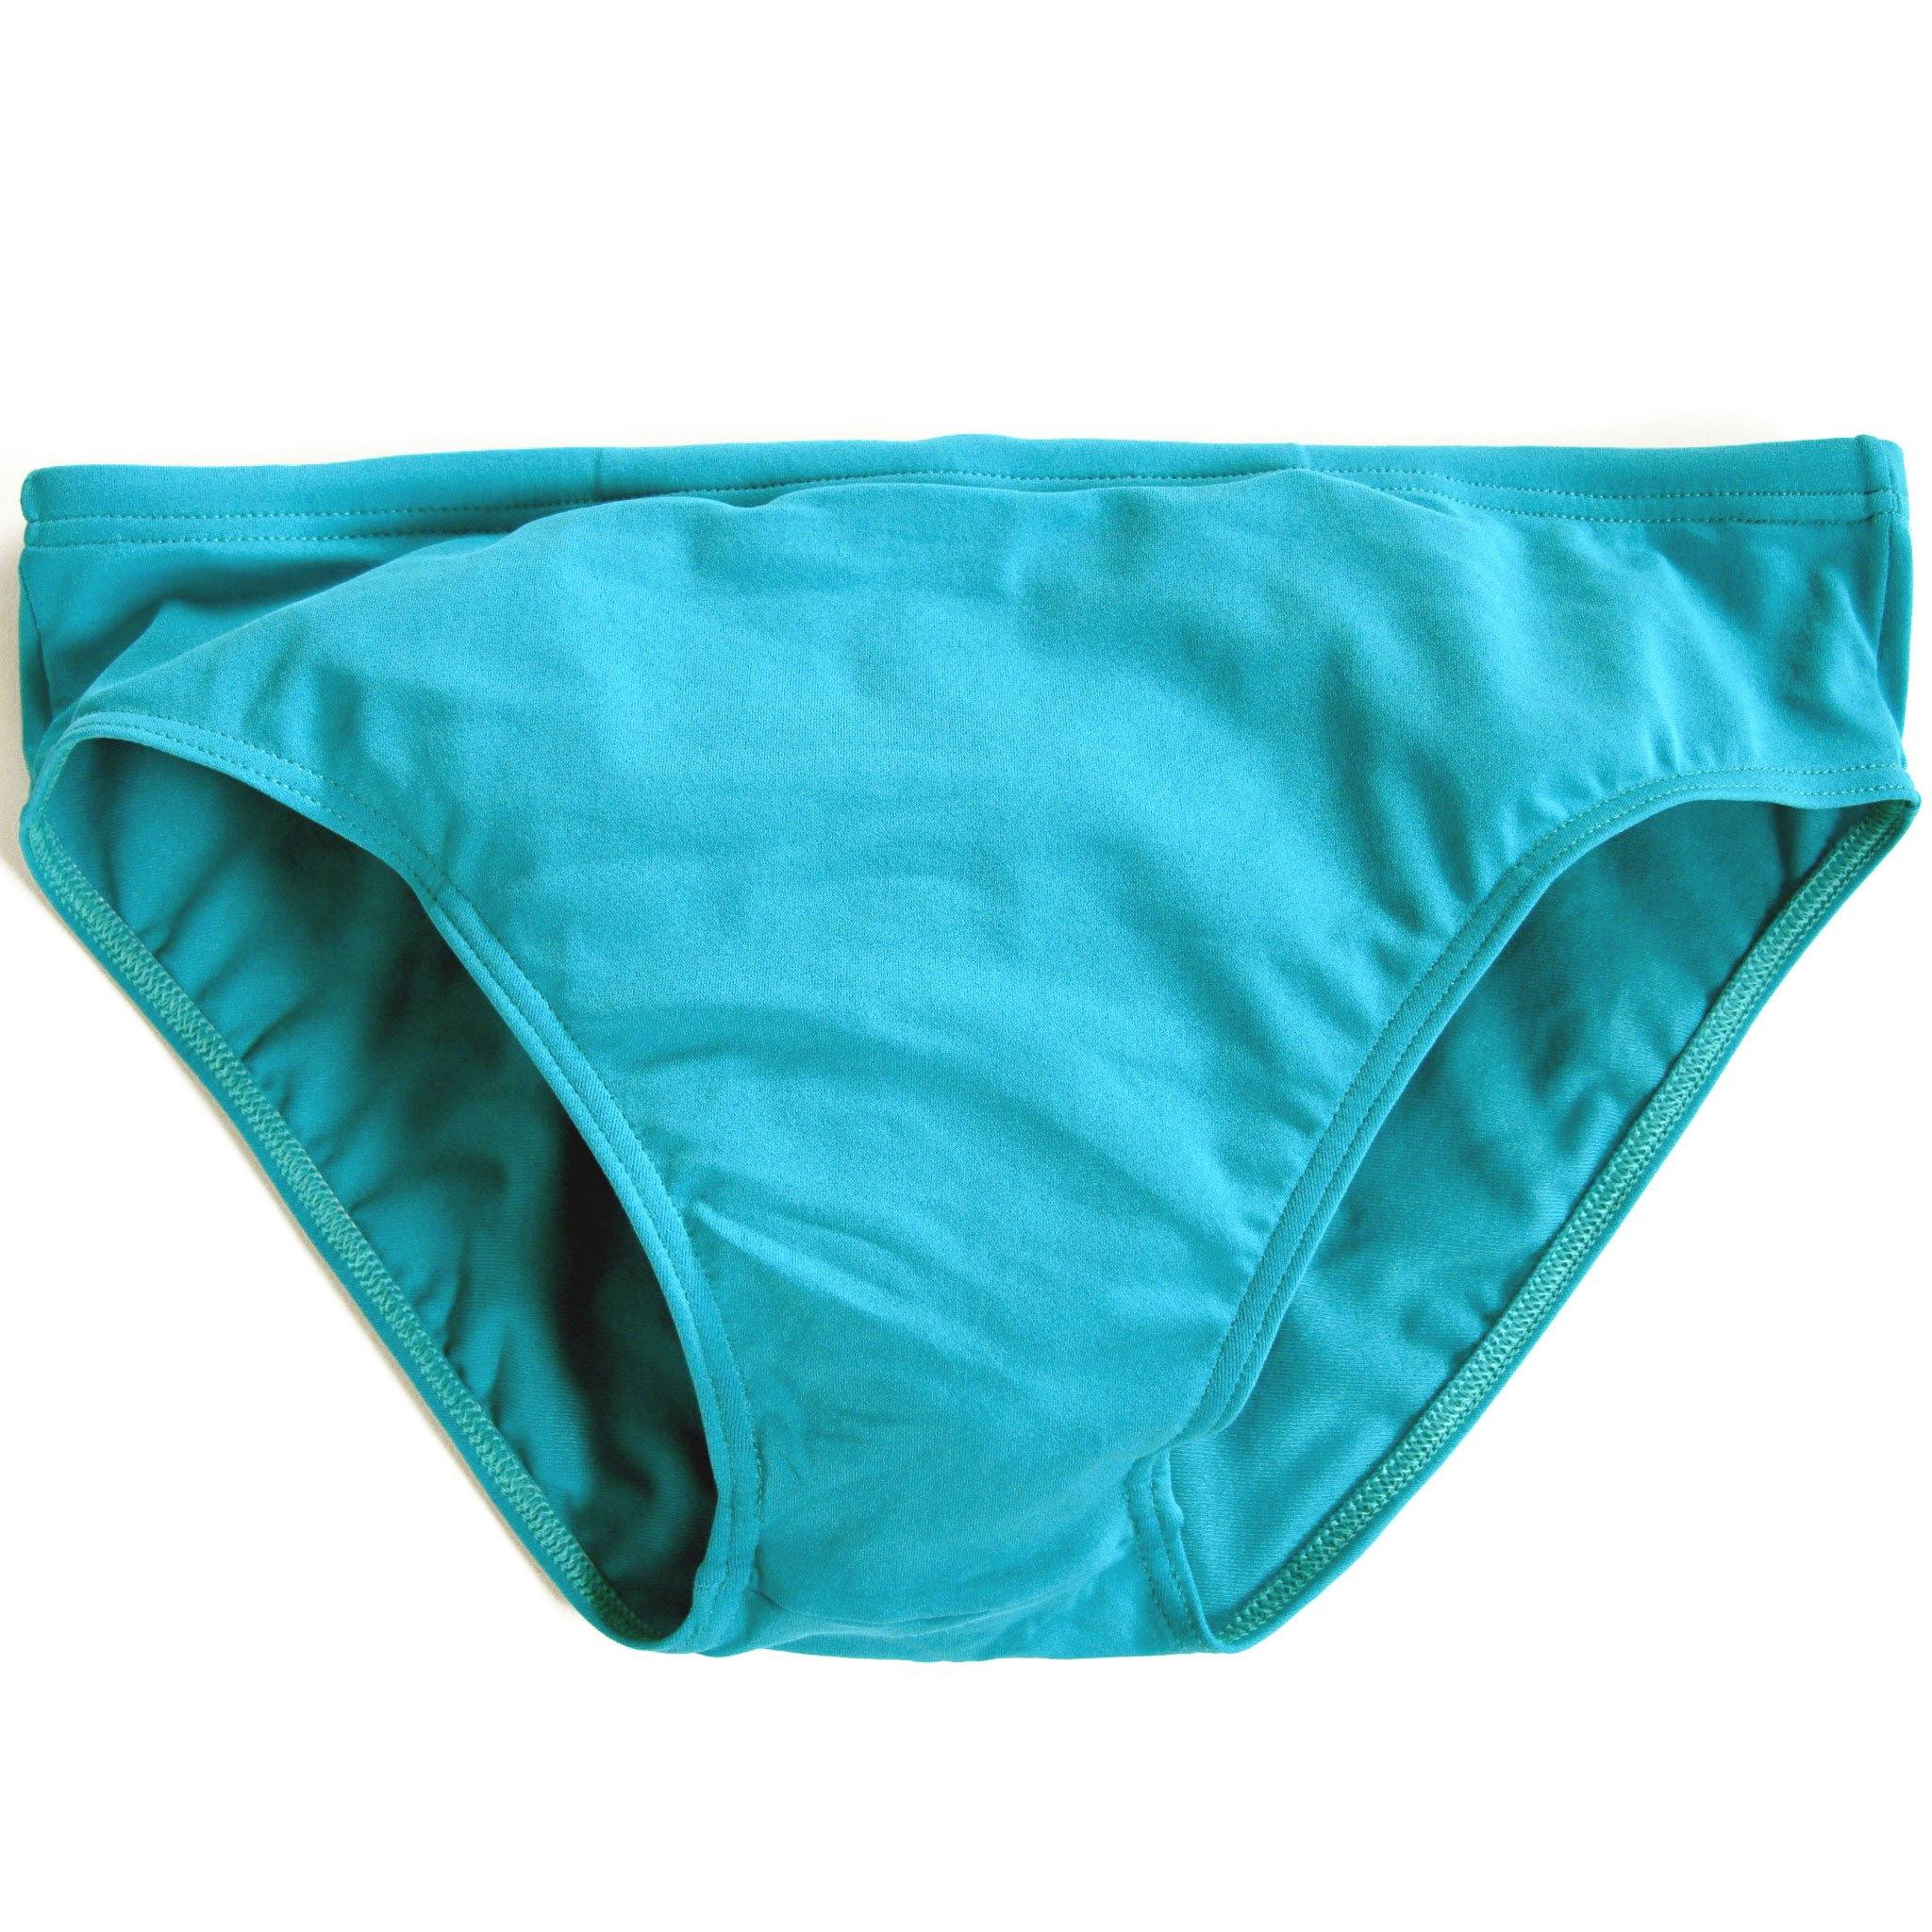 CIRCA75 Men's Chlorine Resistant Swimming Brief Pavone